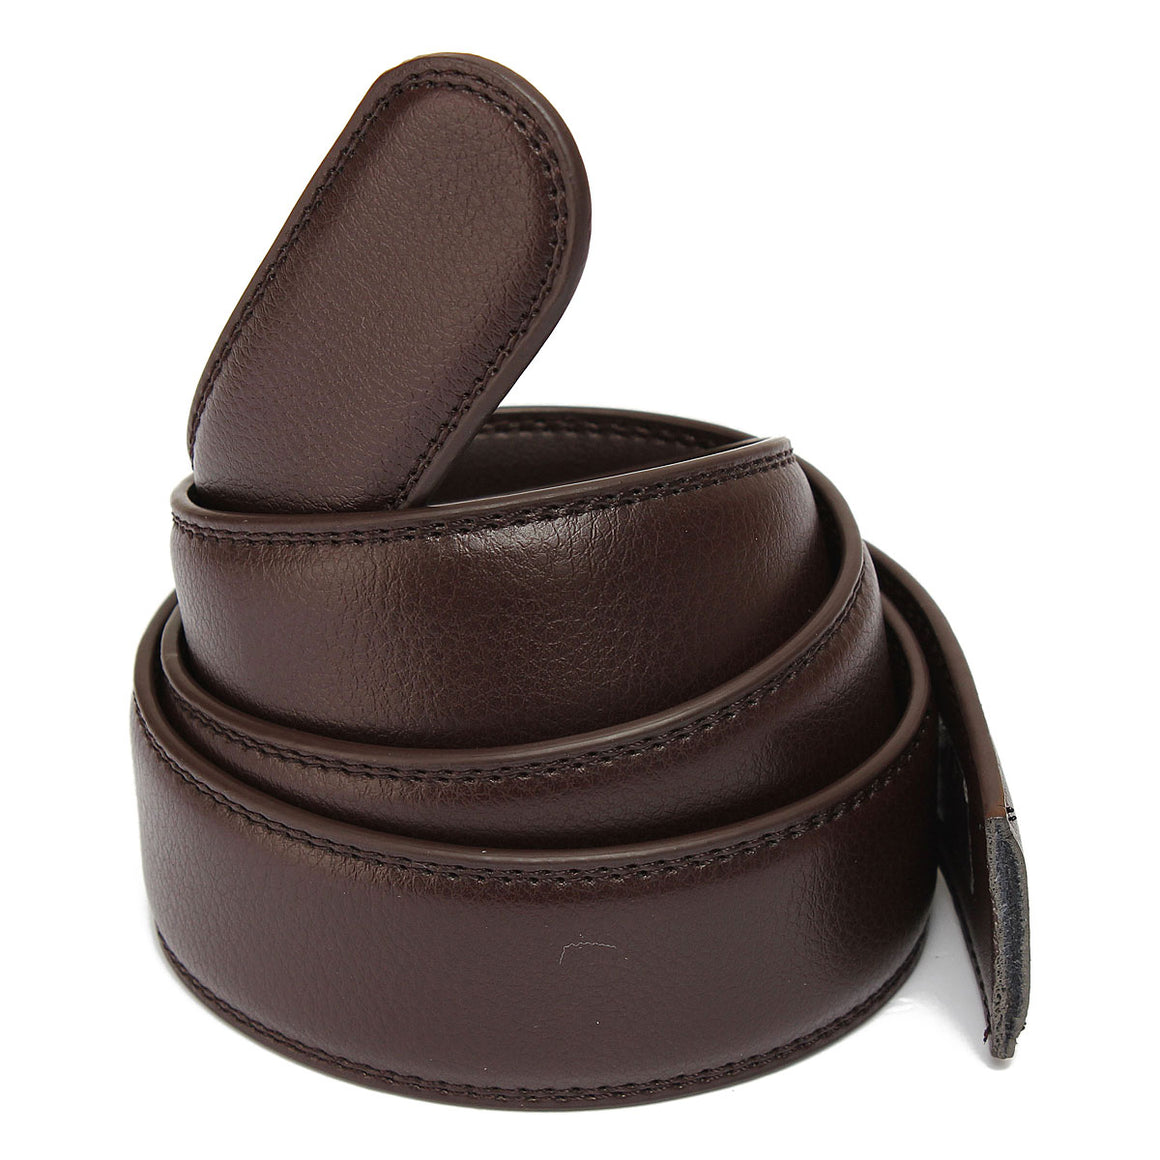 Men Second Floor Cowhide Black Brown Belt Body  Randomly 110cm-125cm Mens Fashion Leather Simple Belts p3835Buy mate